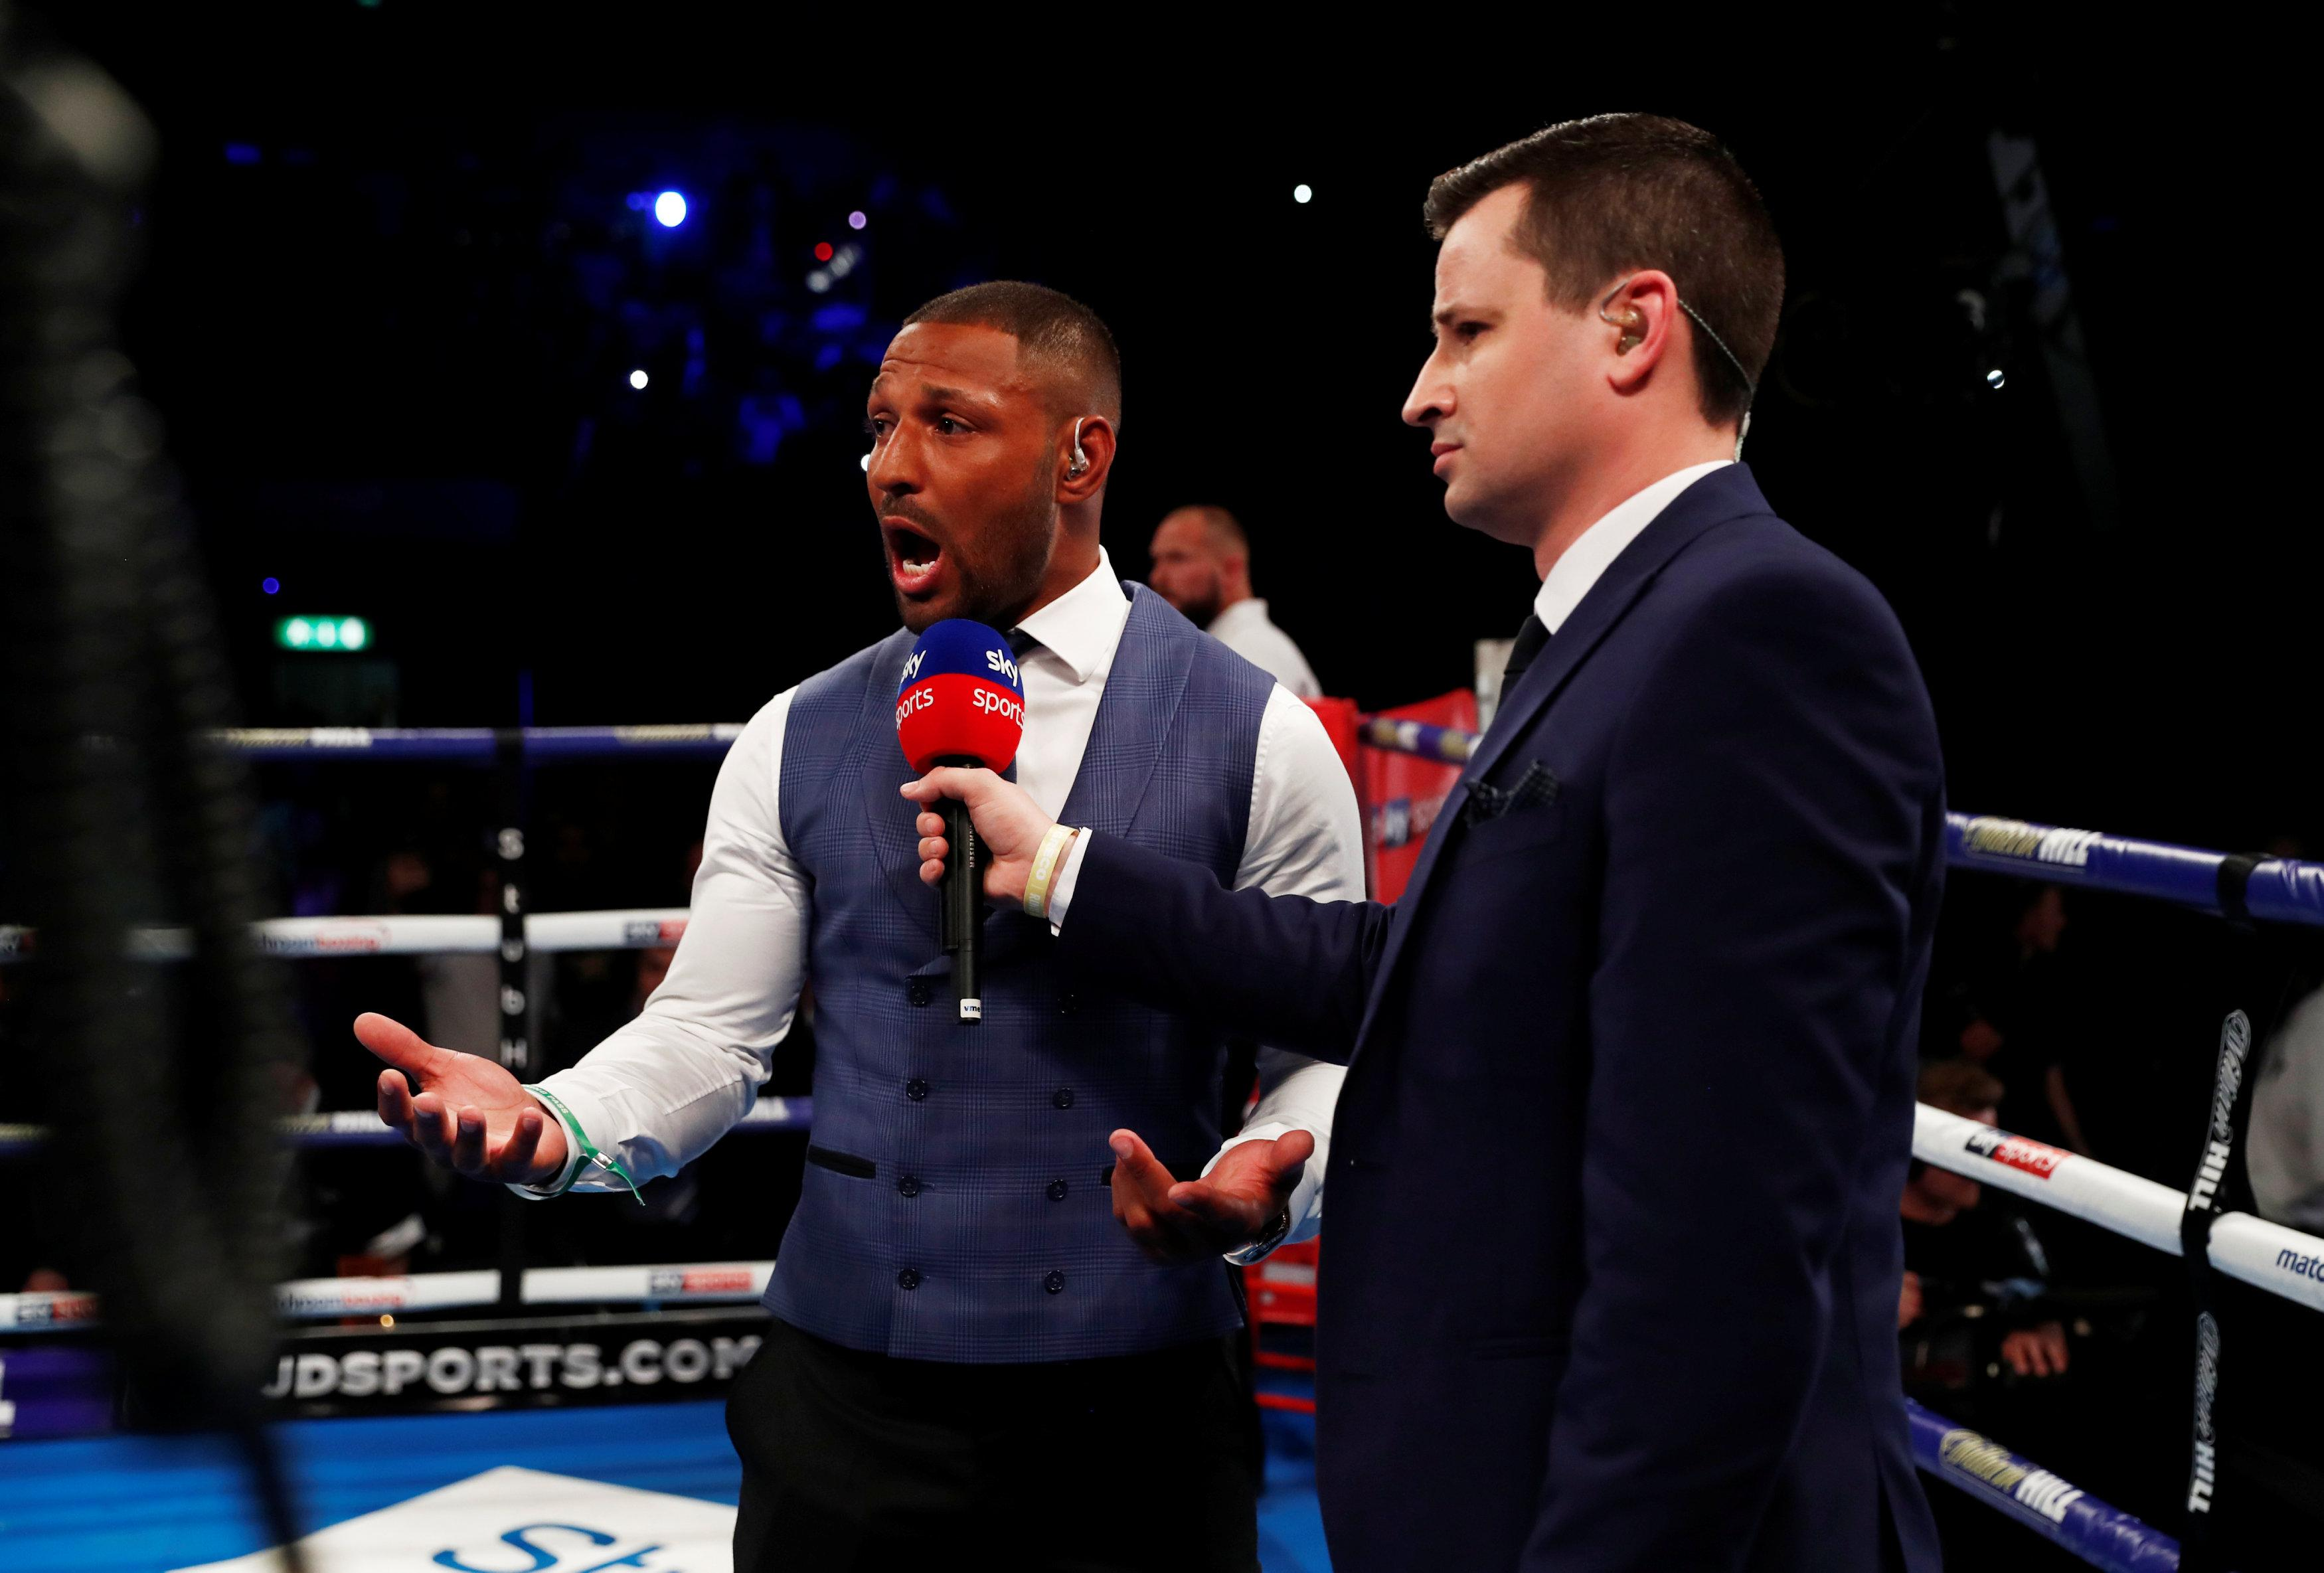 Rival Kell Brook watched Amir Khan's explosive comeback in Liverpool